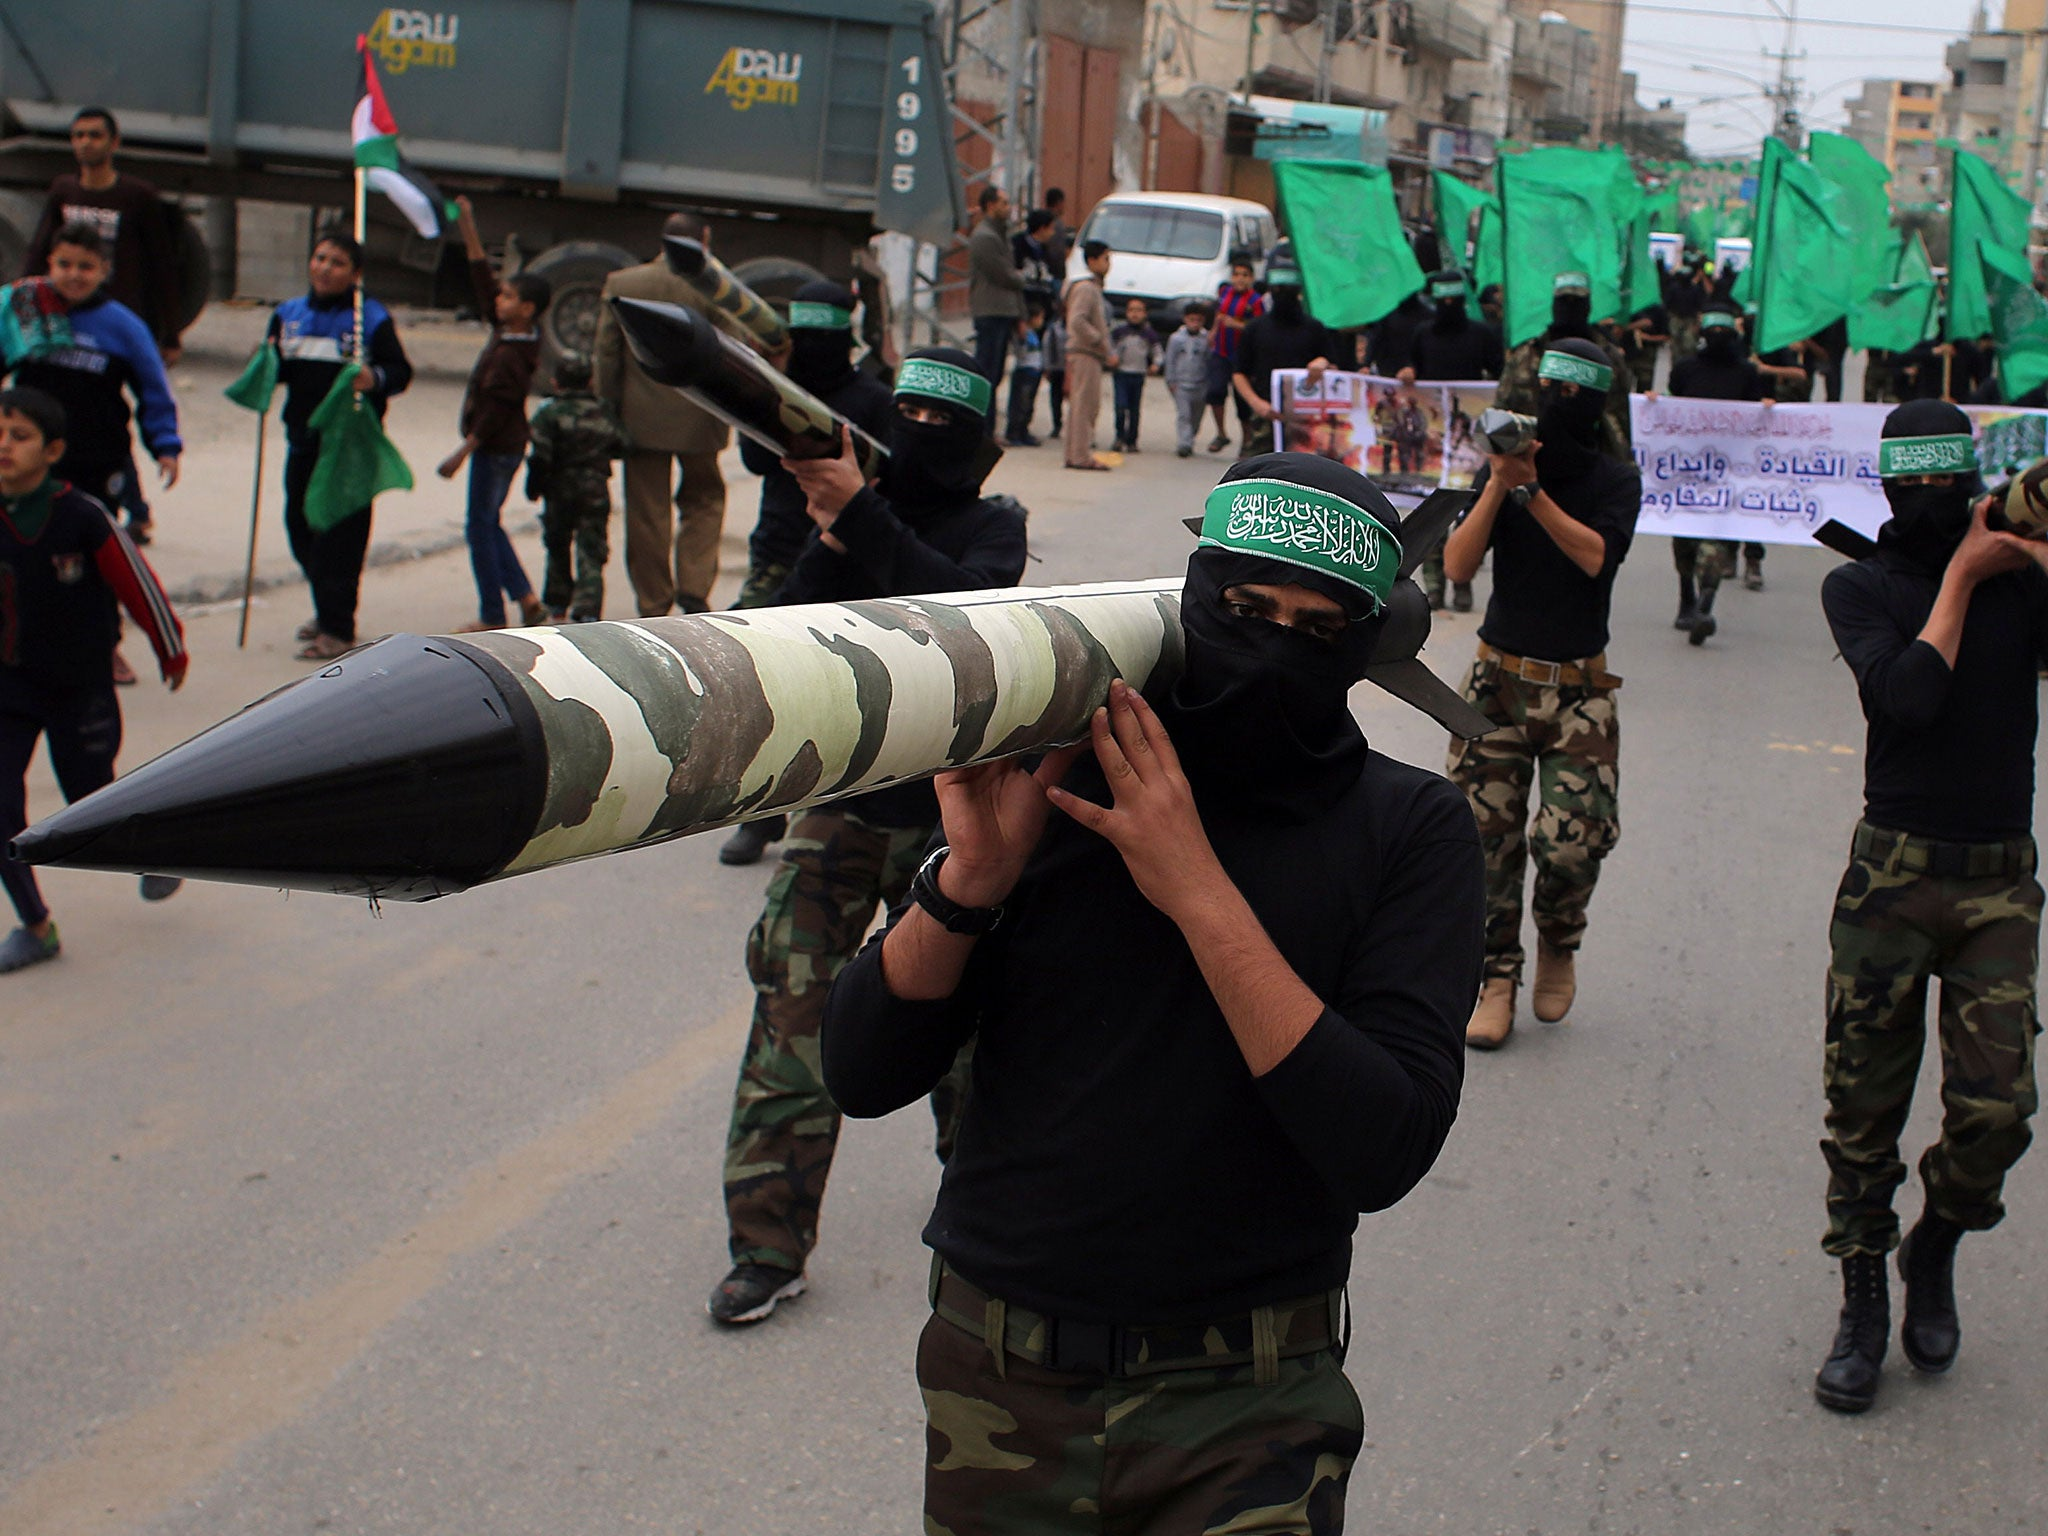 Hamas should be removed from terror lists, EU court recommends | The